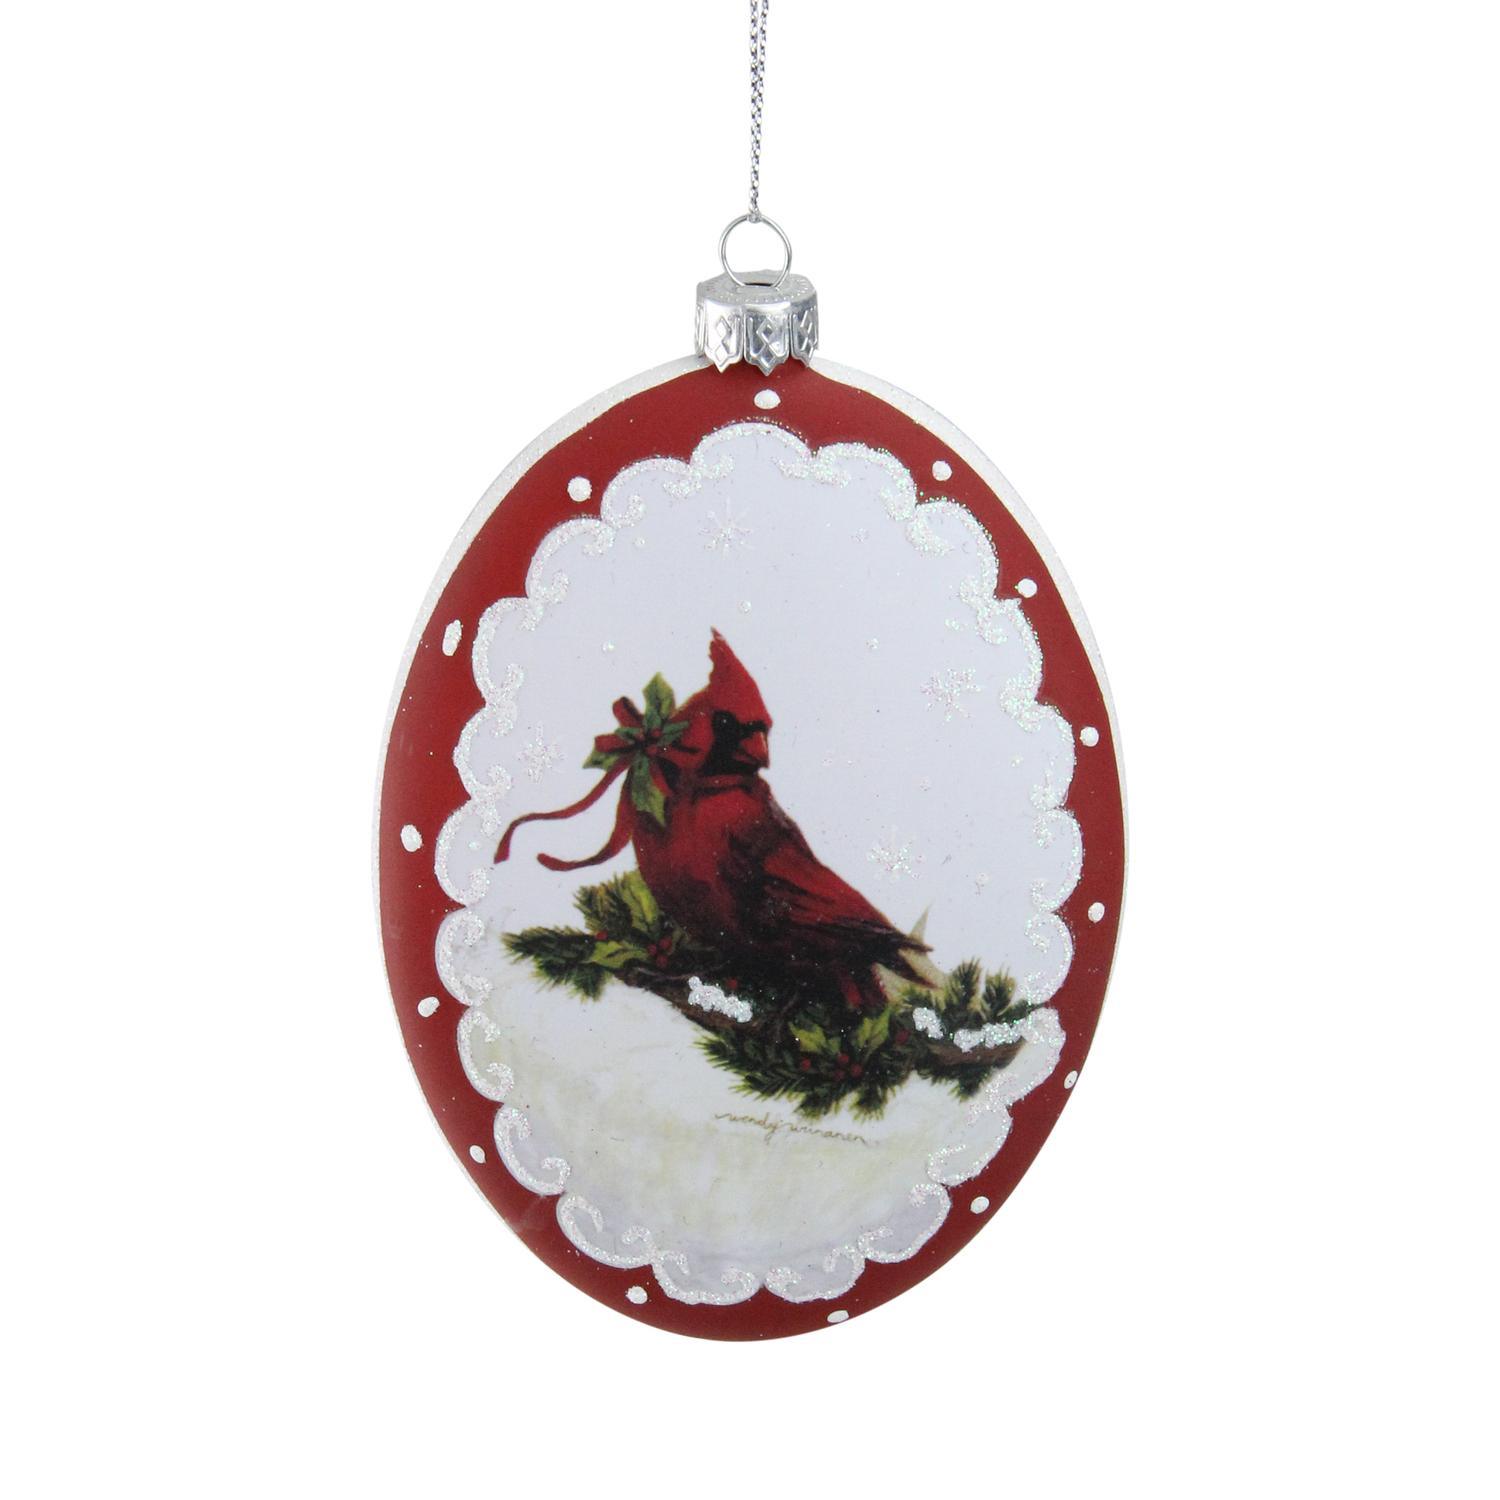 "Roman 5"" Cardinal with Holly and Berry Glittered Christmas Ornament - White/Burgundy"